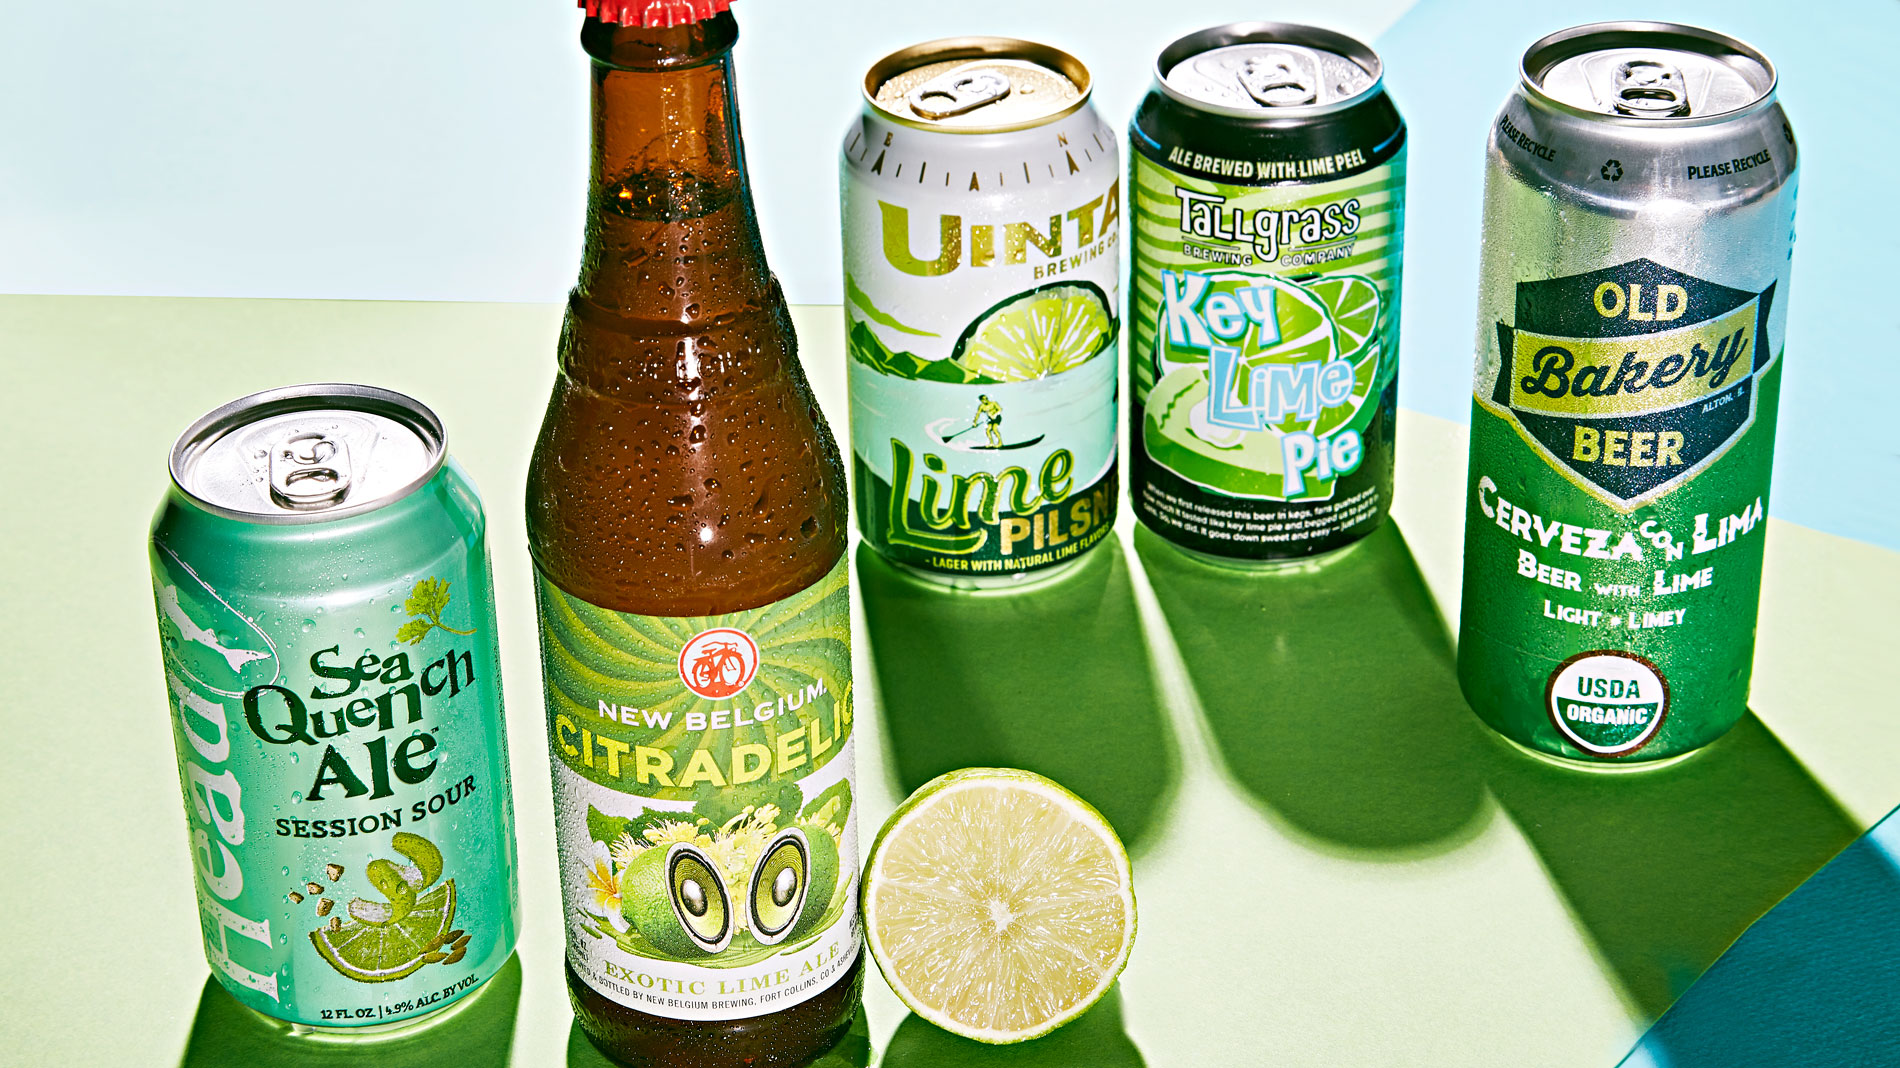 lime beers, guide to drinking, st. louis beer, bud light lime, old bakery beer, new belgium brewing, dogfish head